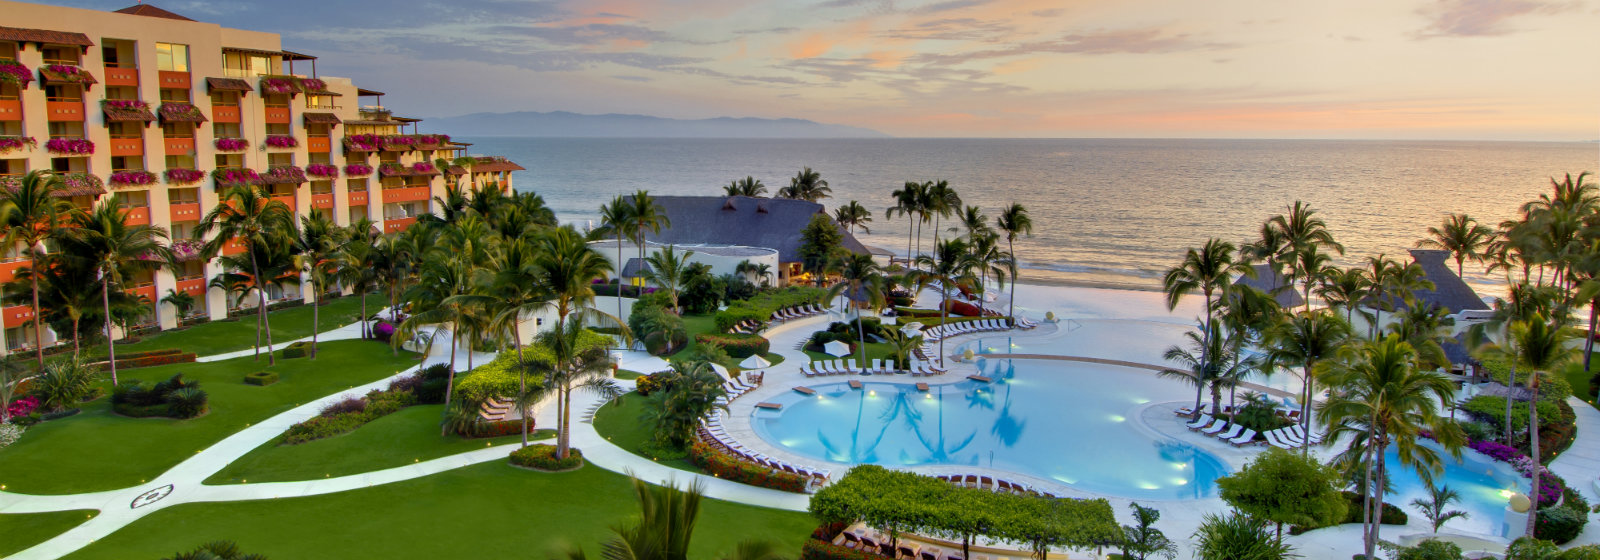 Grand Velas Riviera Nayarit offering Meetings Facilities